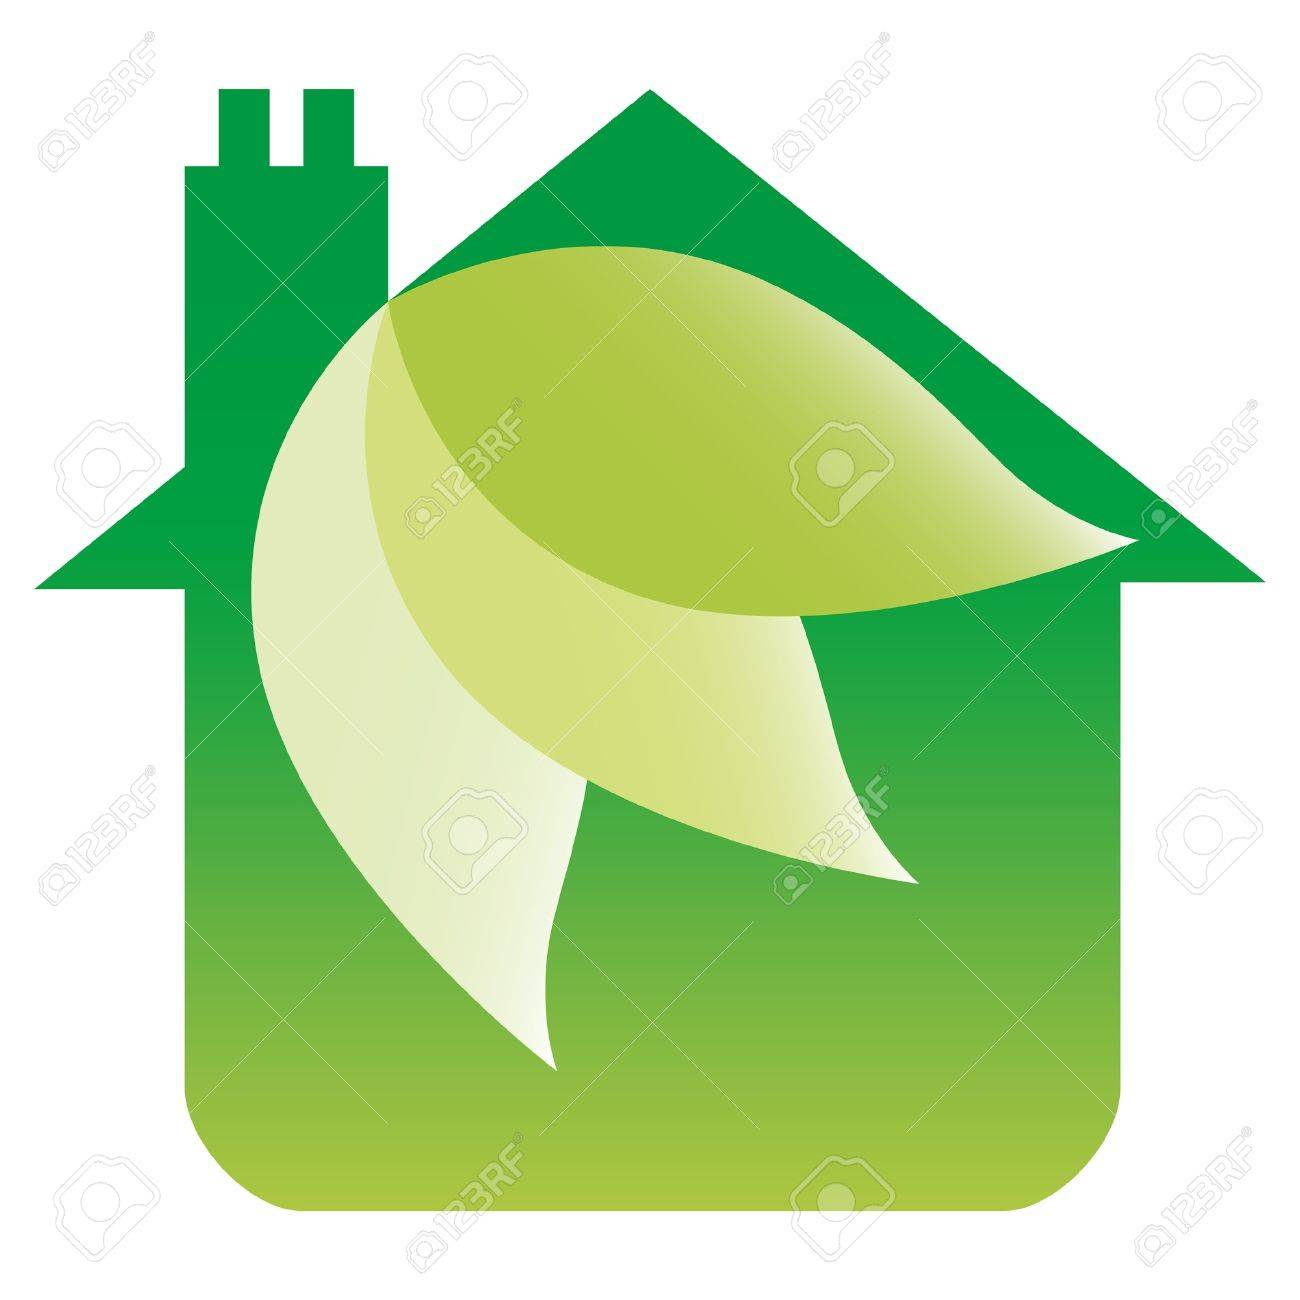 eco friendly house design royalty free cliparts vectors and